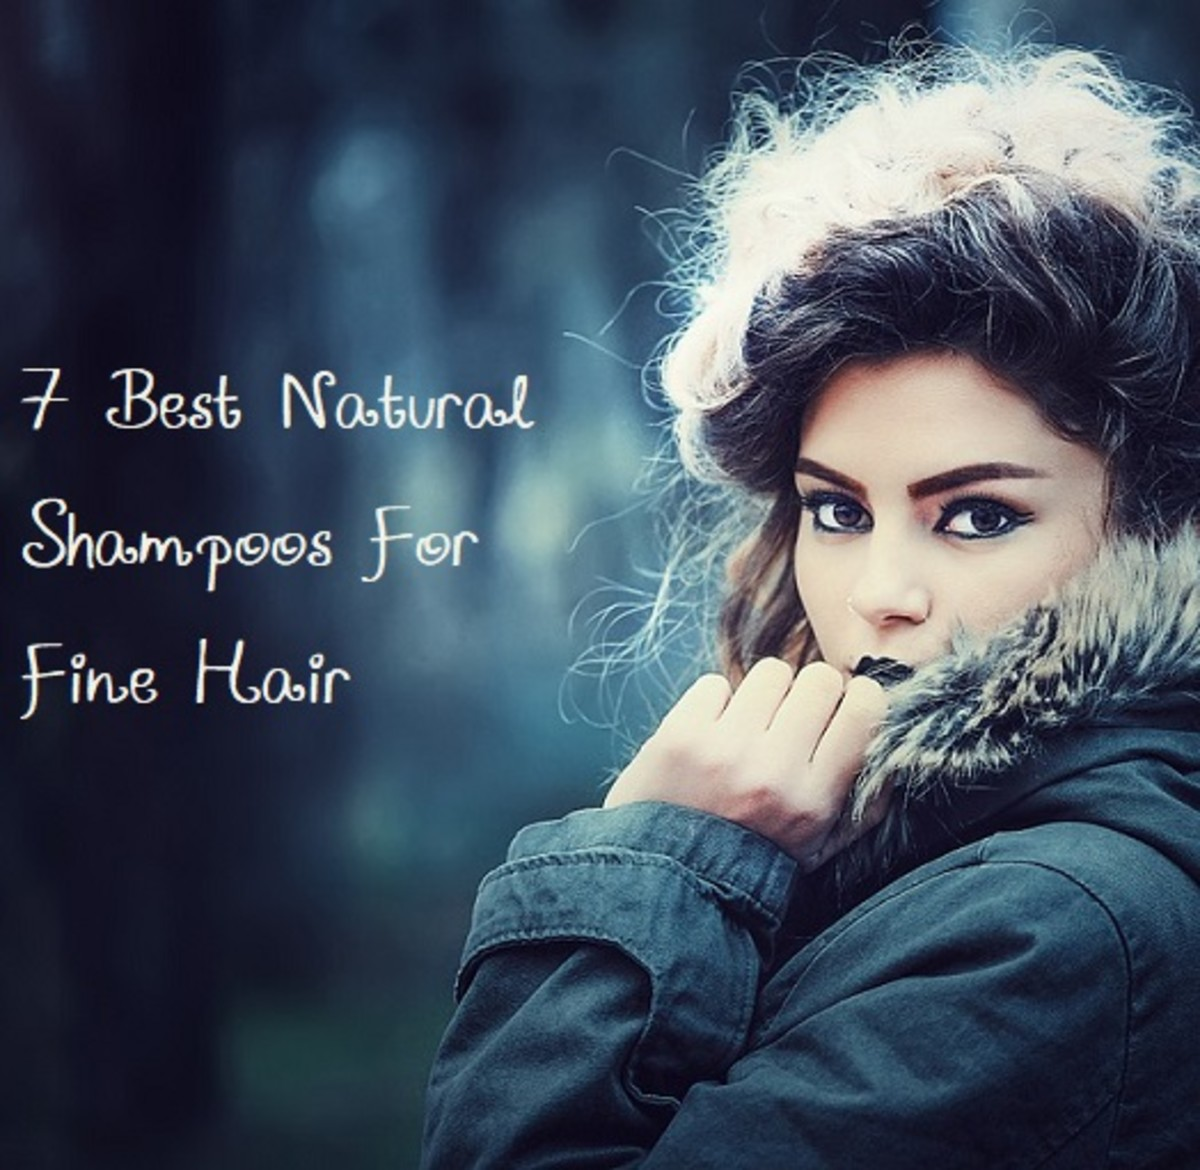 Find the right shampoo to nourish your fine hair.